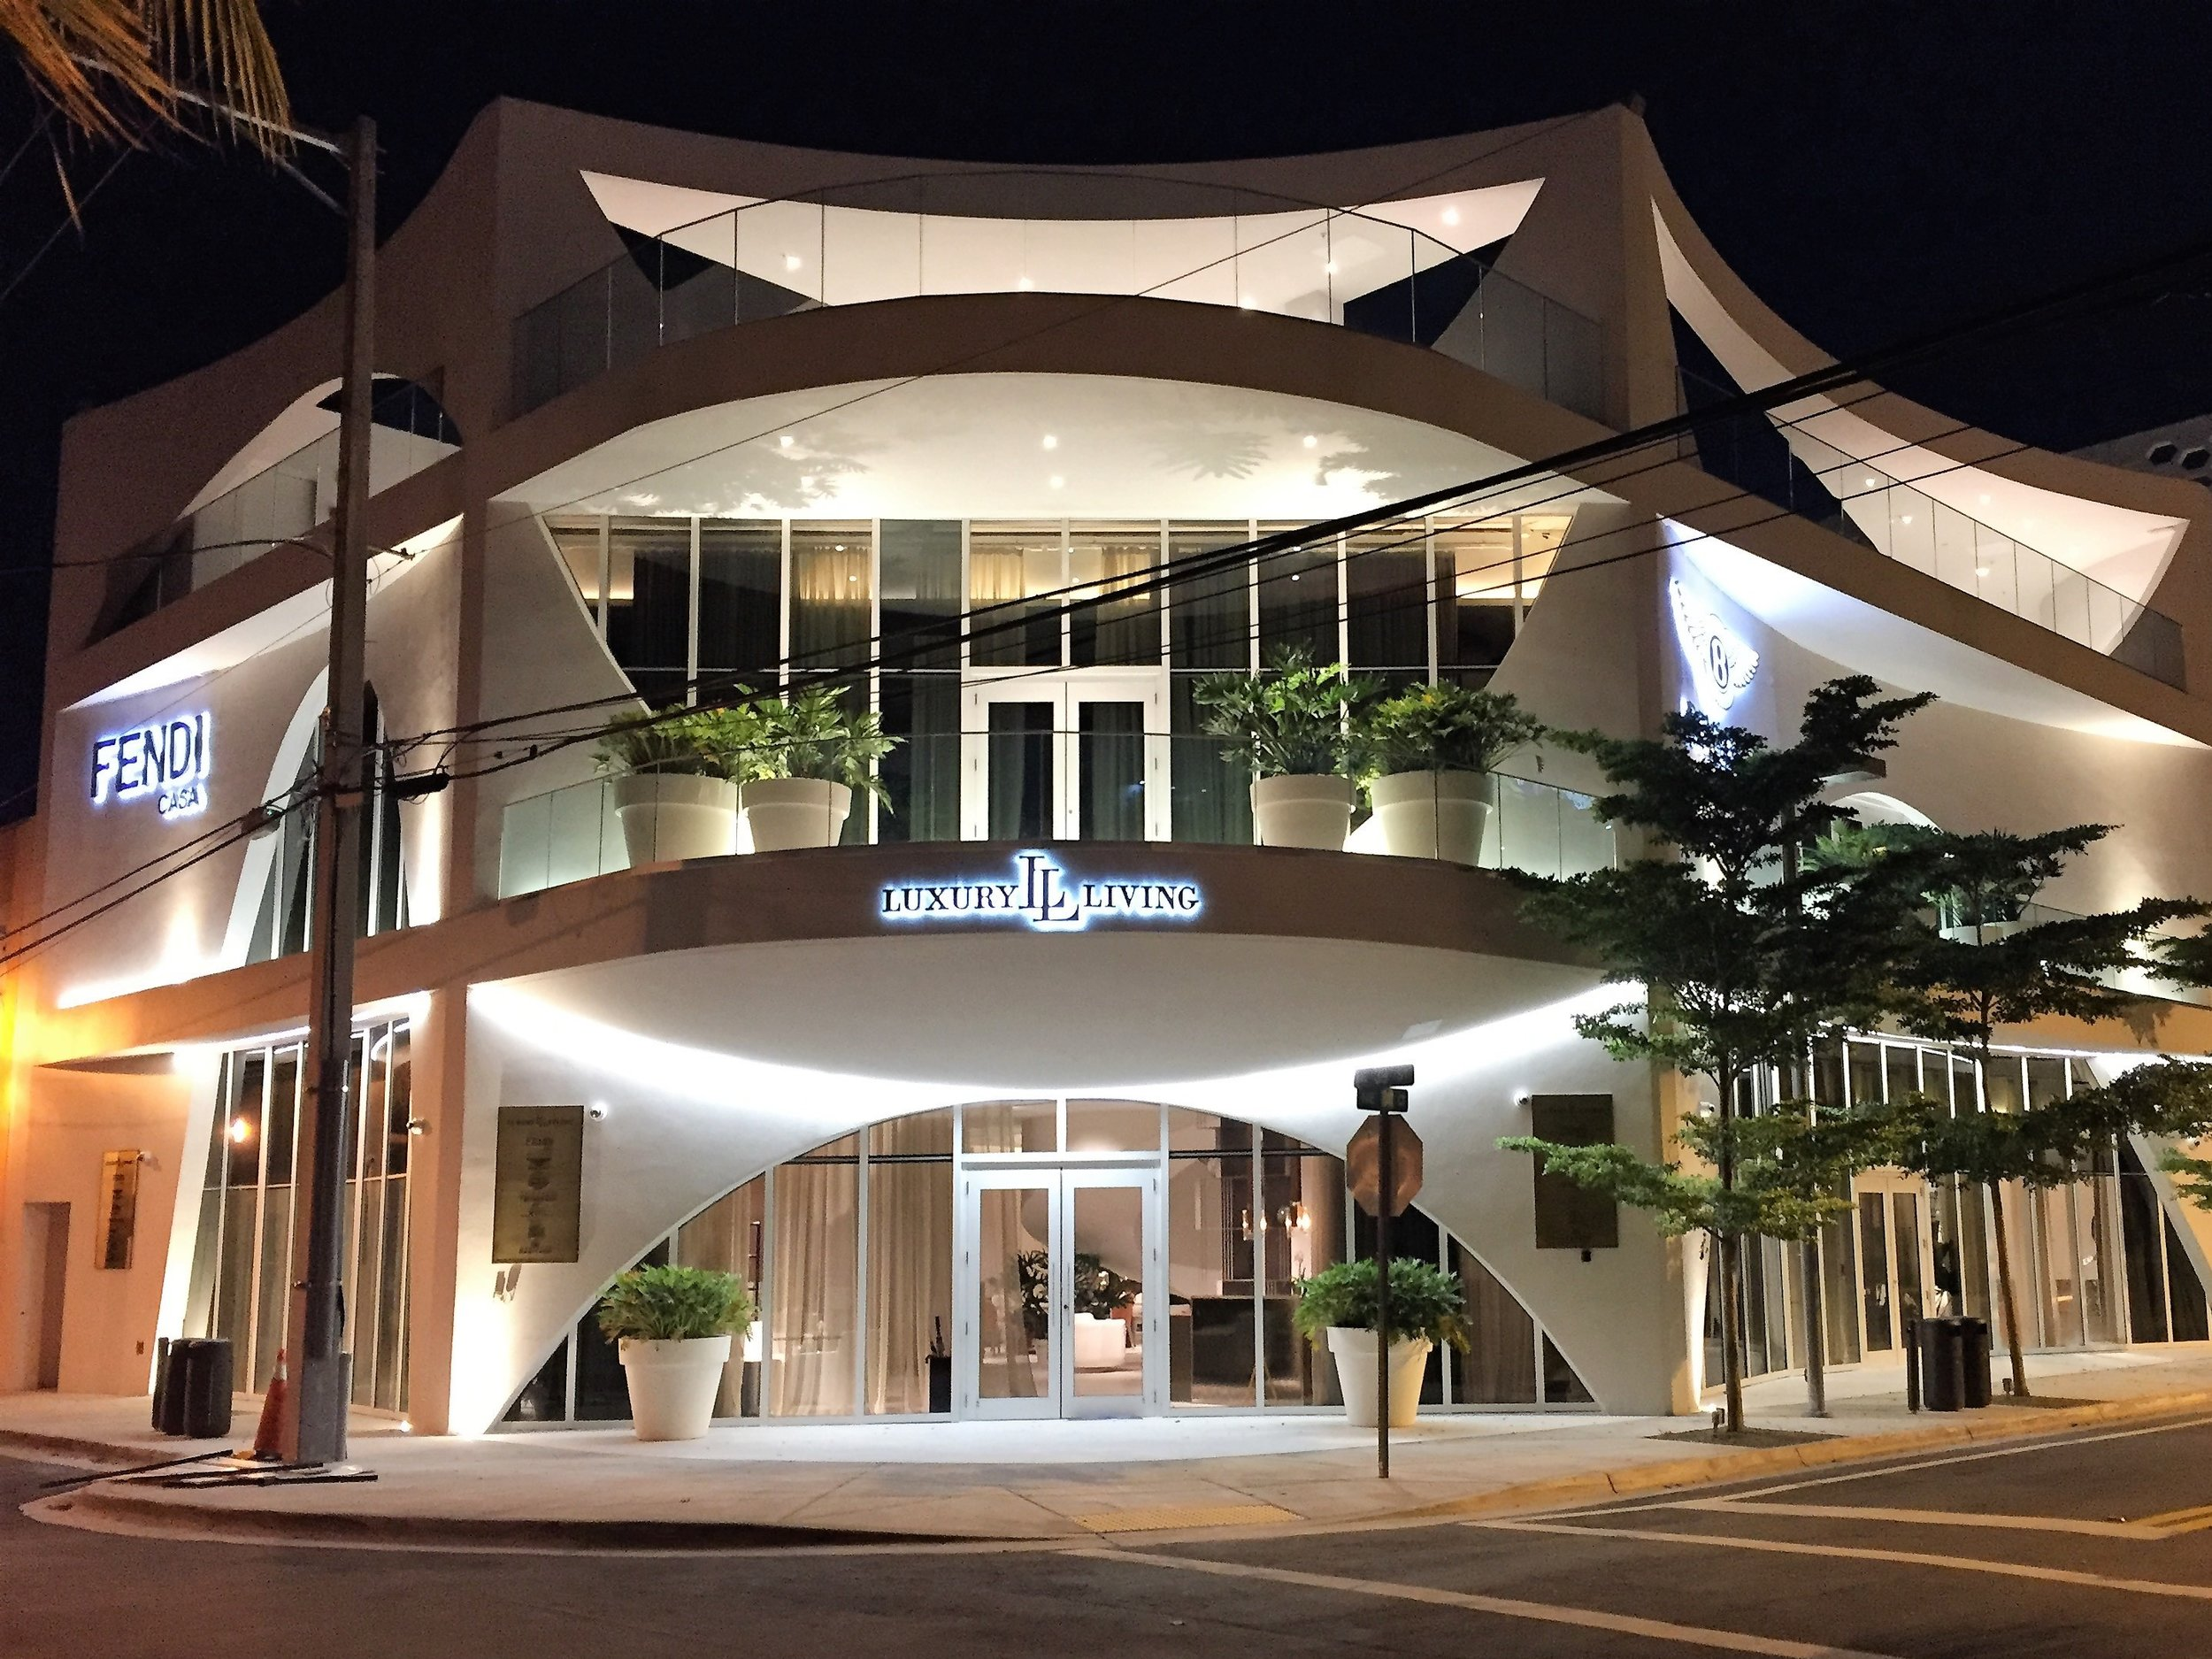 Luxury Living Flagship store in the Miami Design District, making use of the flexible VENUS product from LED Linear.